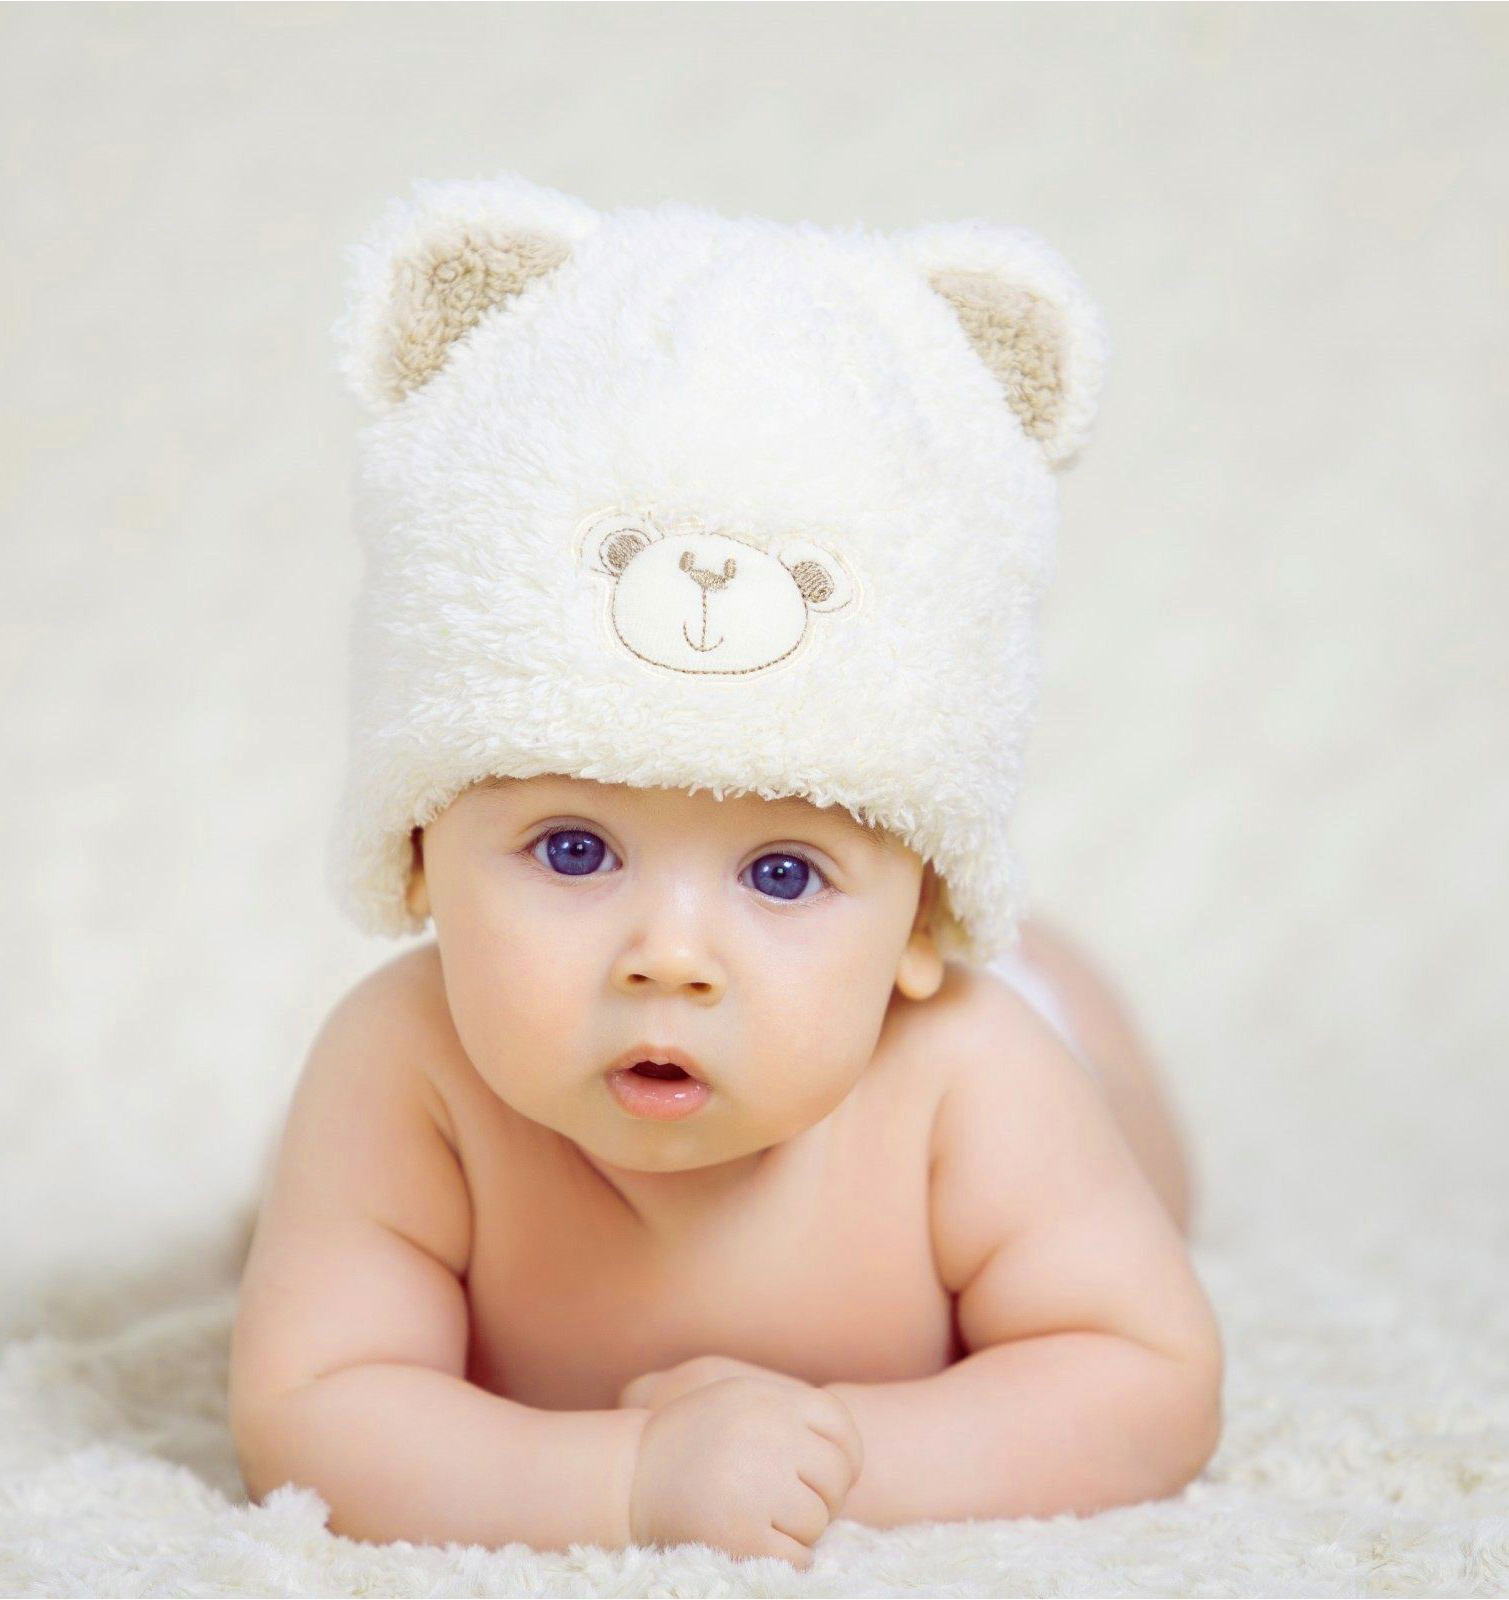 Cute Baby Boy Images Wallpaper Pictures Download